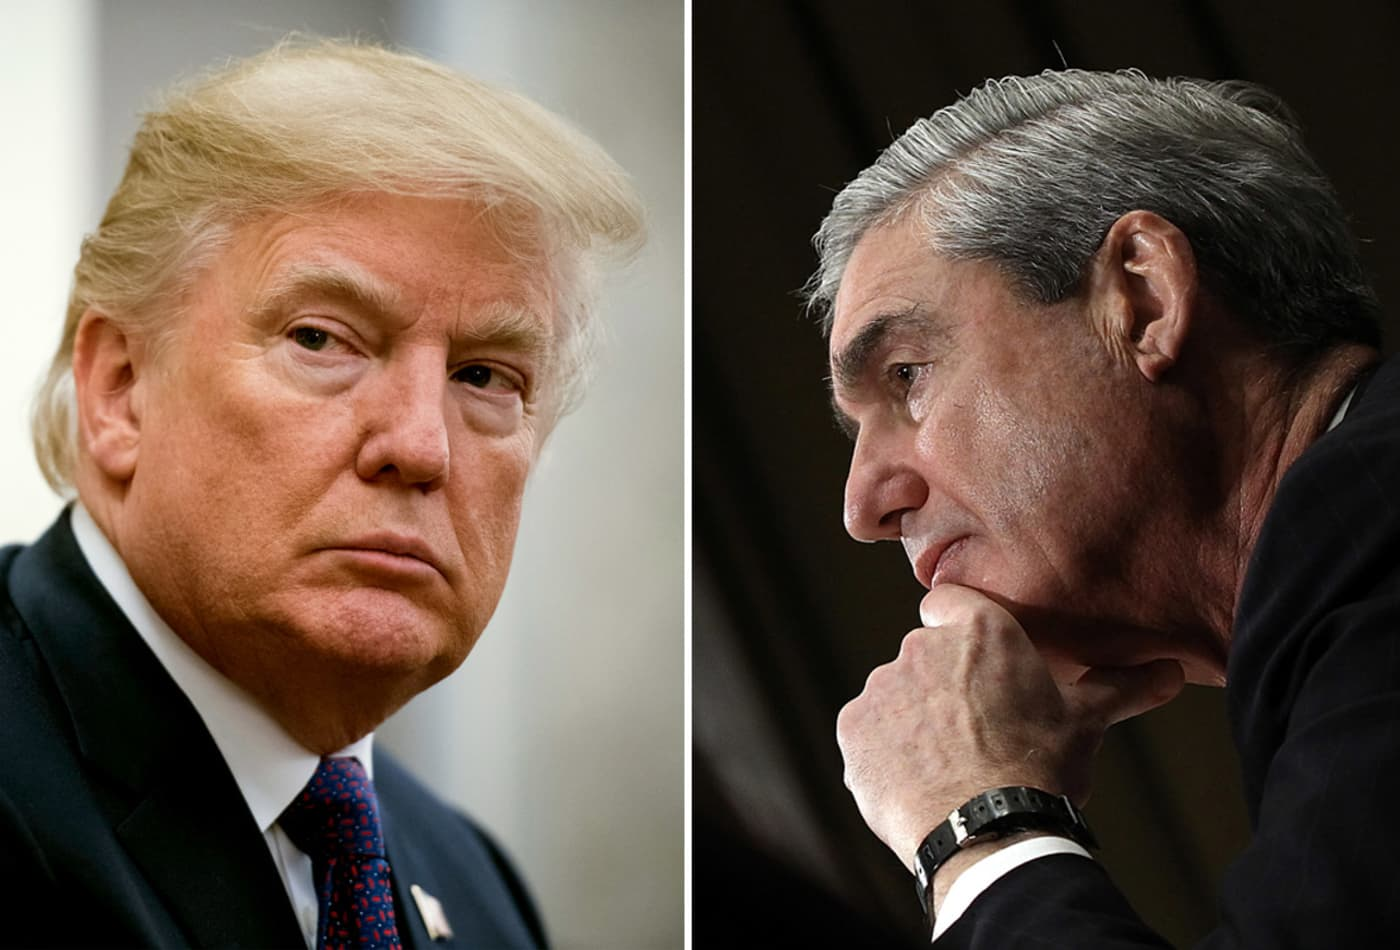 Trump accuses Mueller of a crime